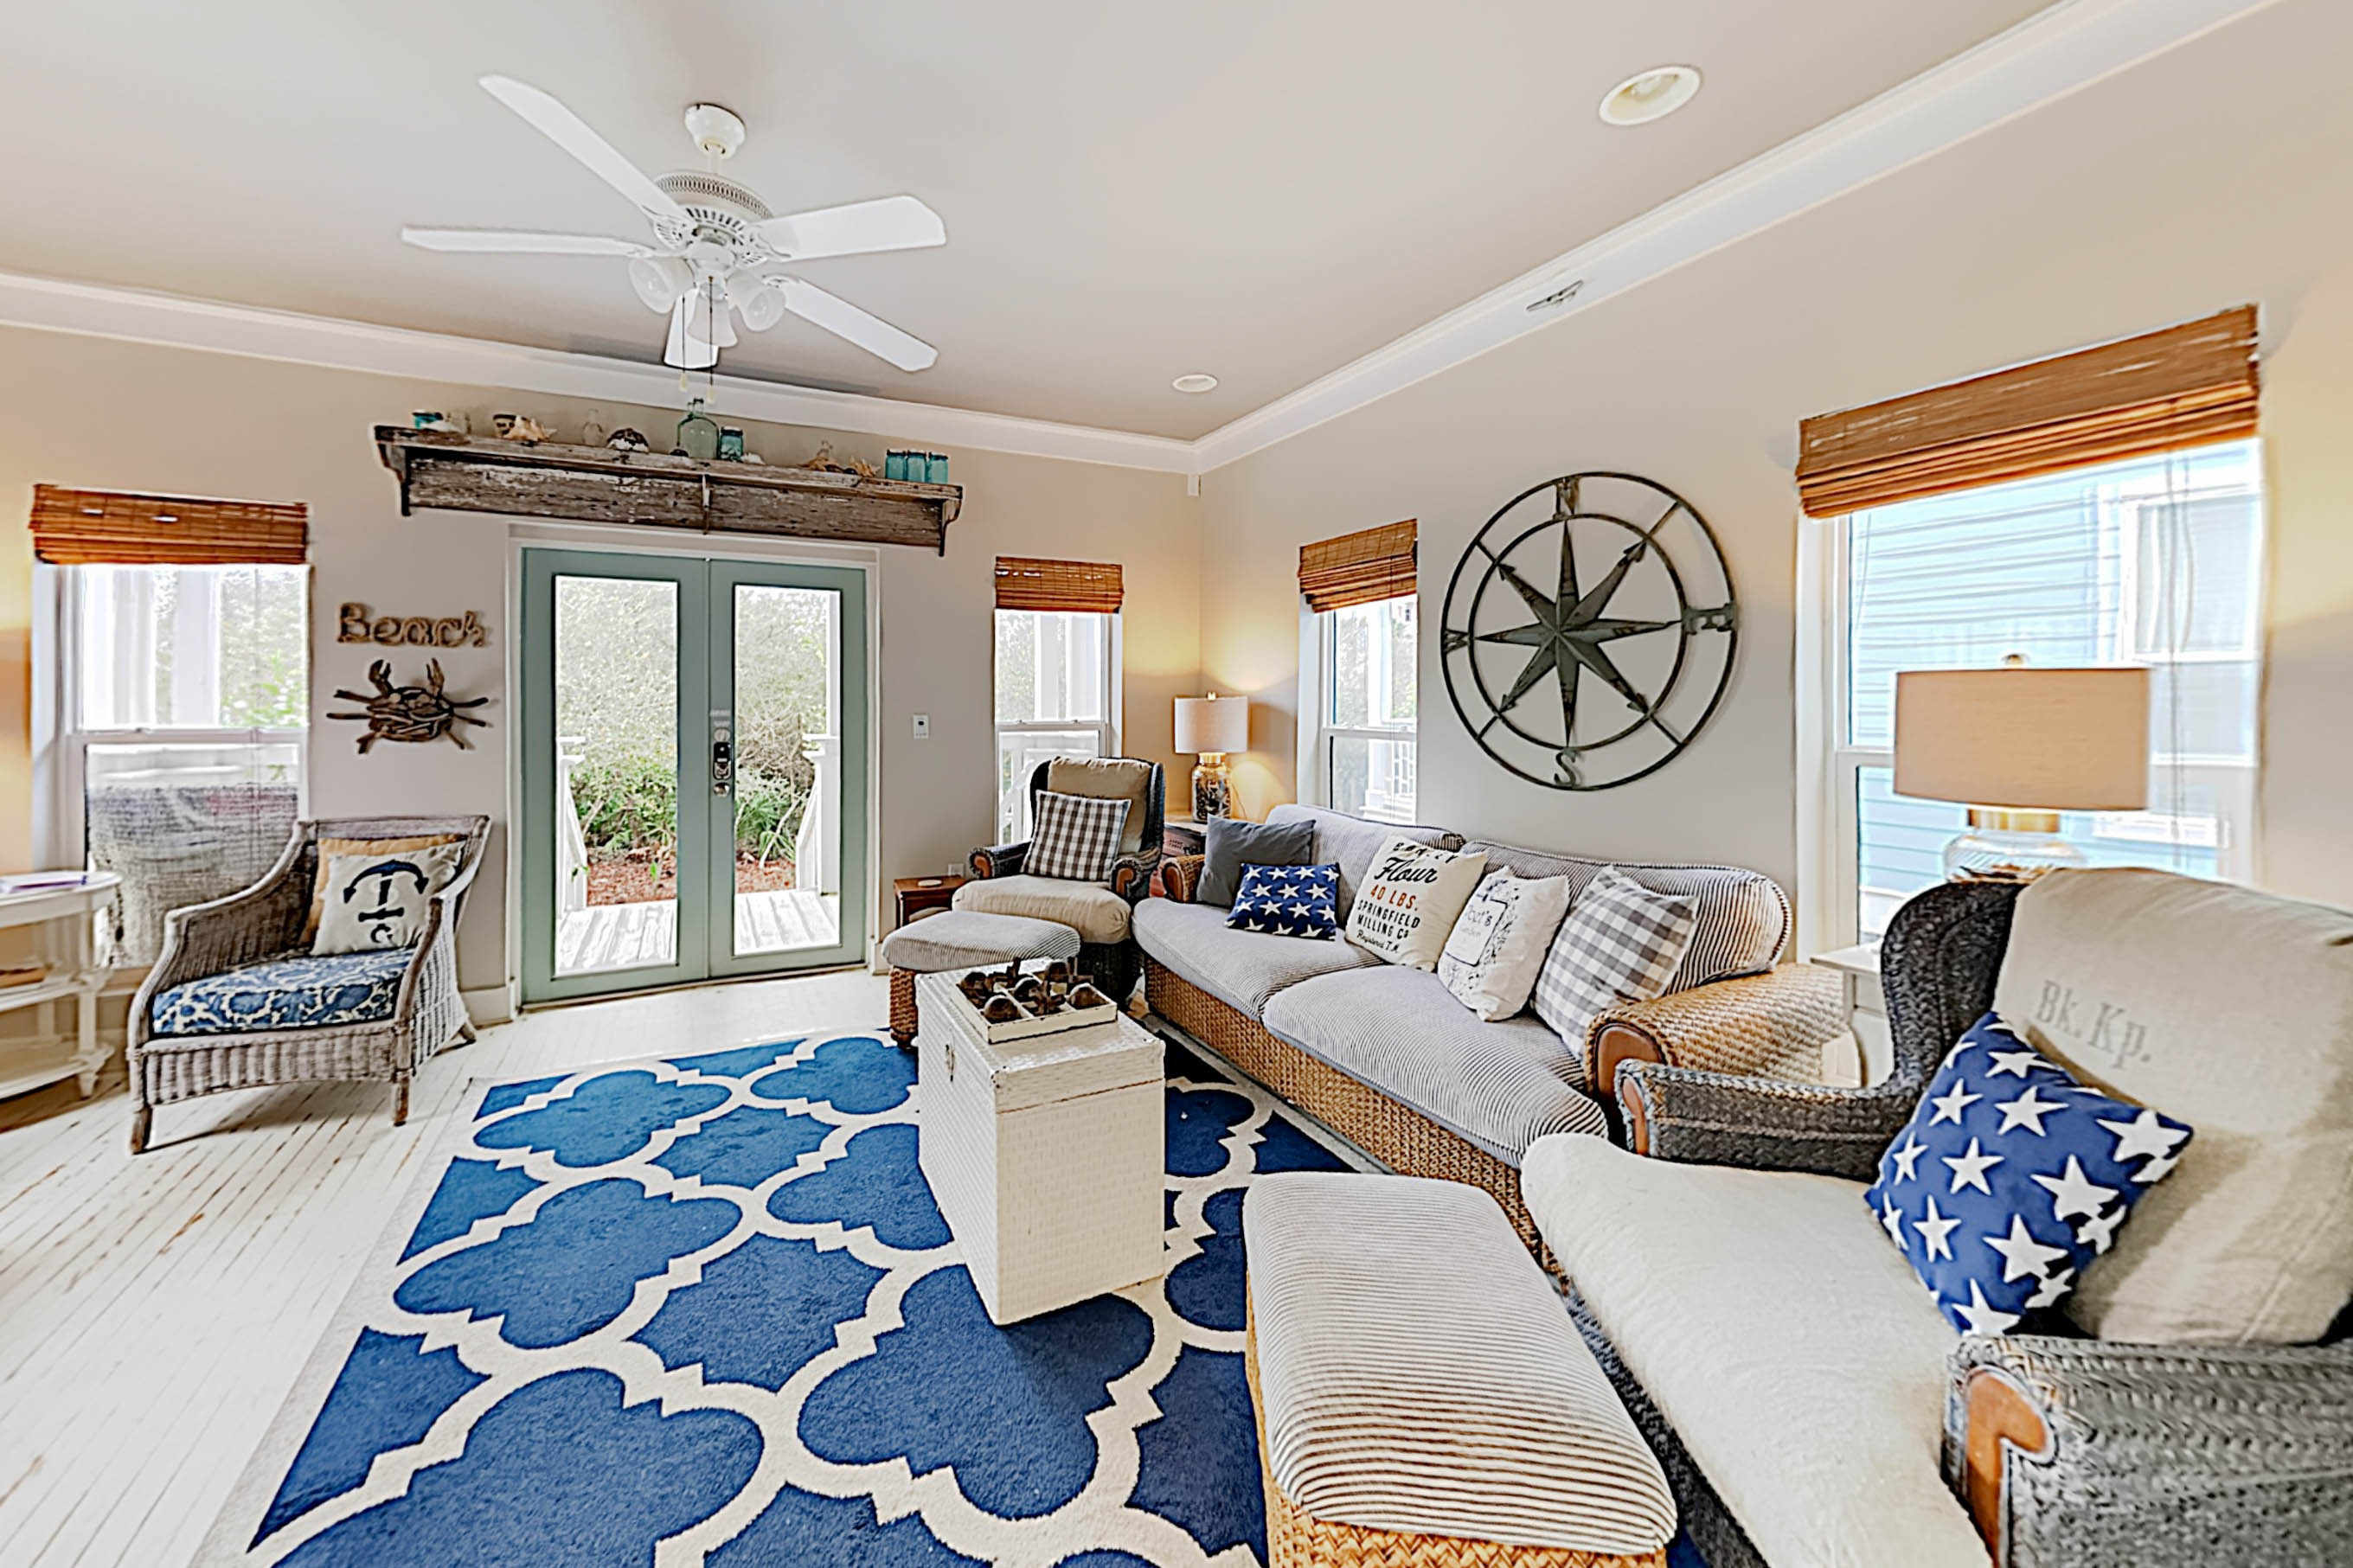 Panama City Beach FL Vacation Rental Welcome to 30A!